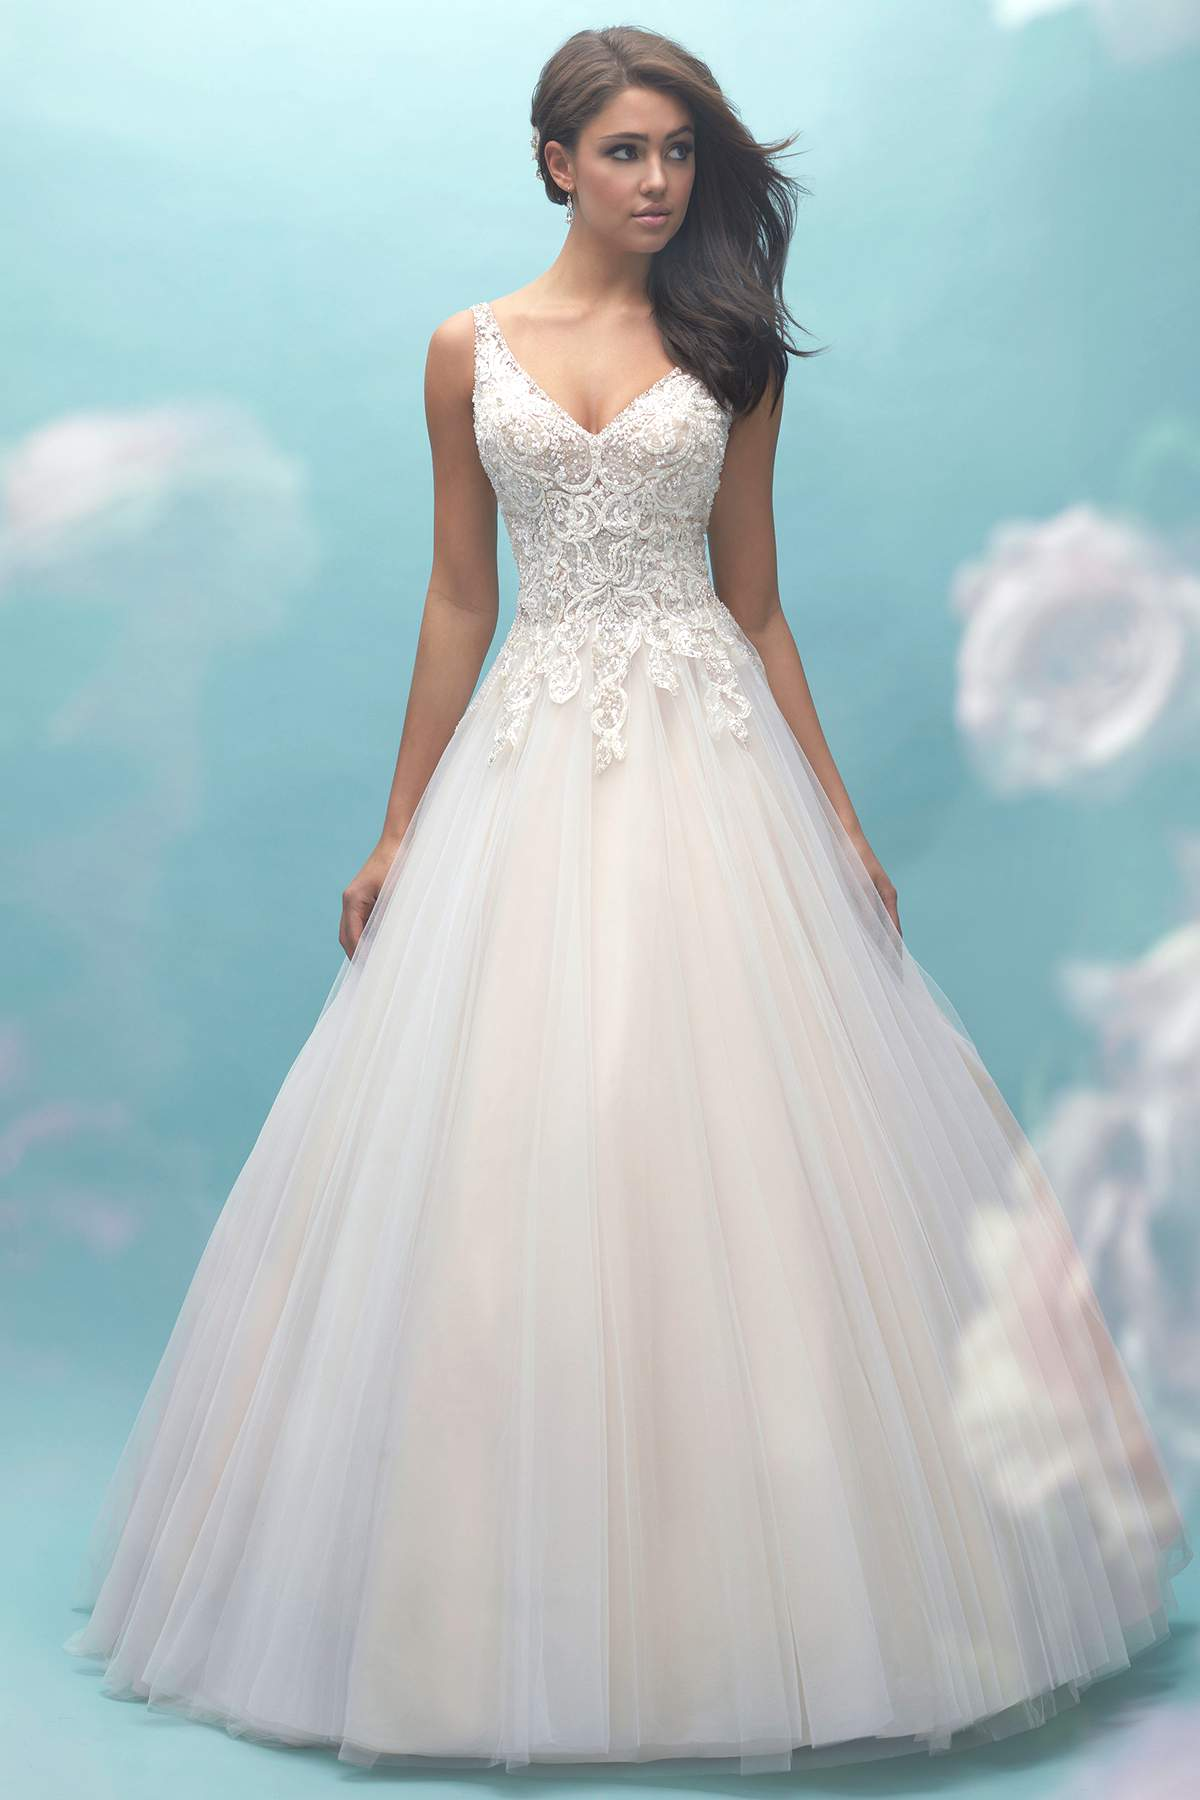 Style 9459 by Allure Bridals - Find Your Dream Dress